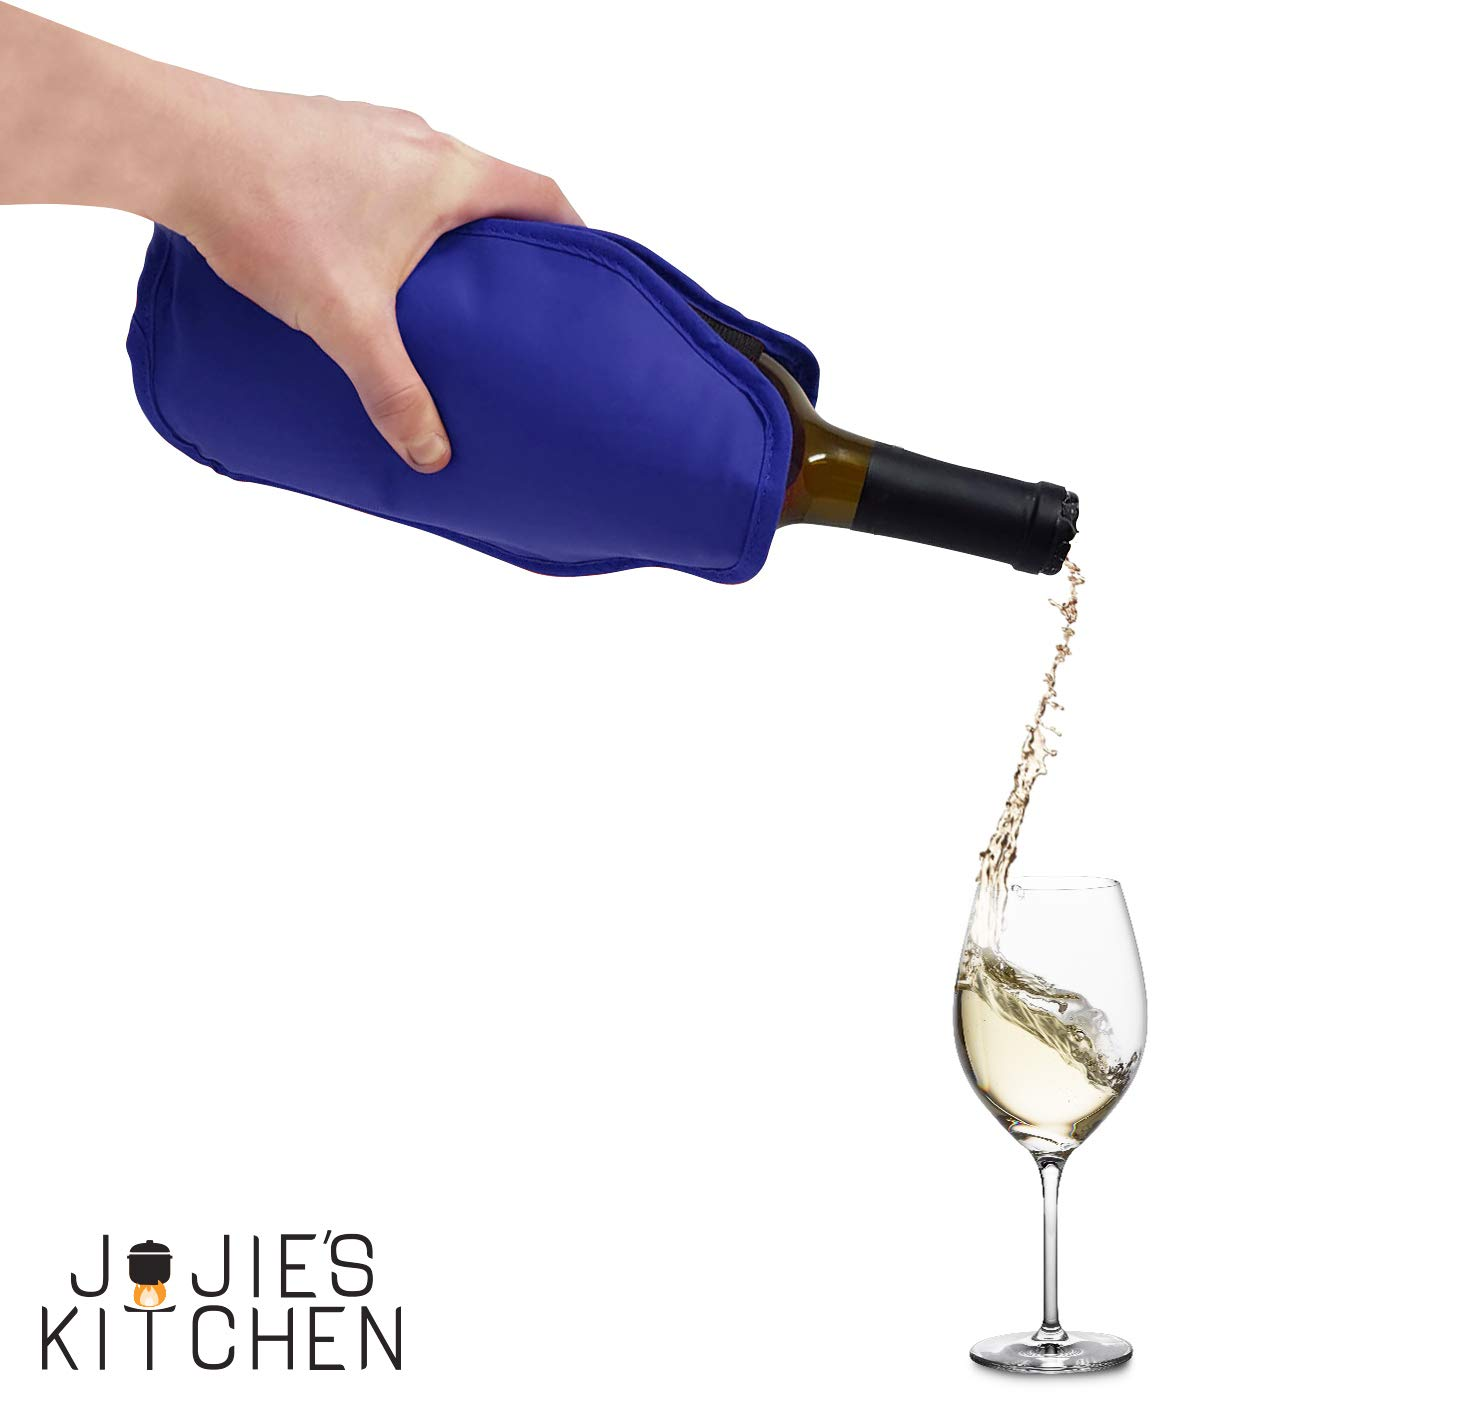 Ideal for Dinner Parties Events Perfect for Chilling Wine /& Champagne Bottles Joejis Kitchen Set of 2 Wine Cooler Sleeves Black /& Blue